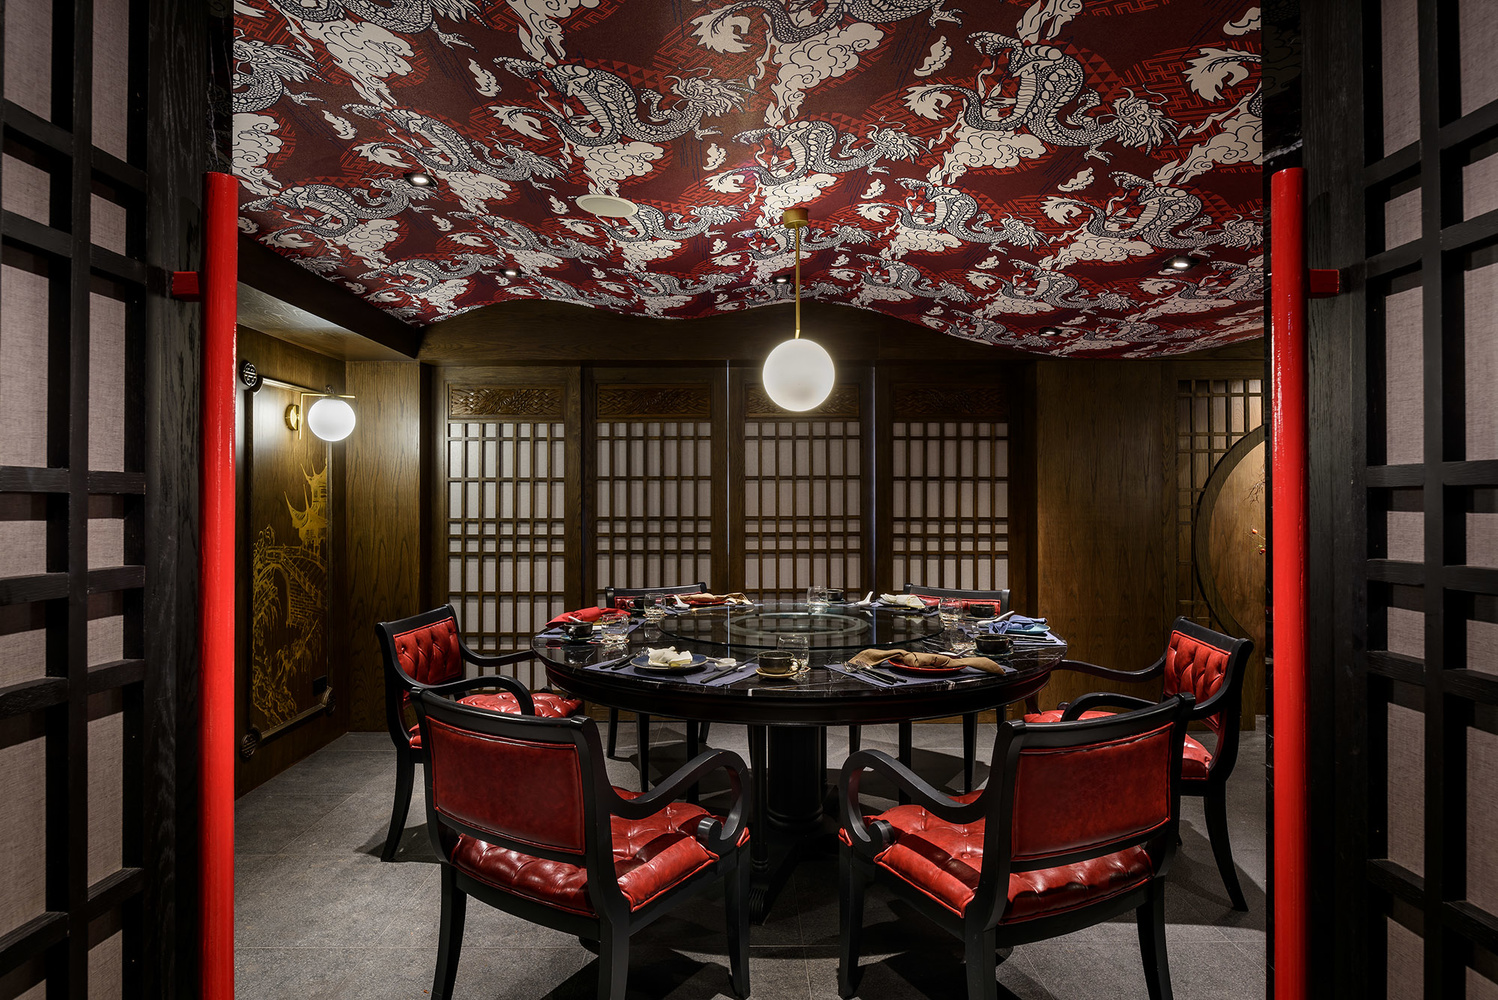 Private Dining Room at Chef Pom Chinese Cuisine by TODD by Adisorn Ruangsiridecha